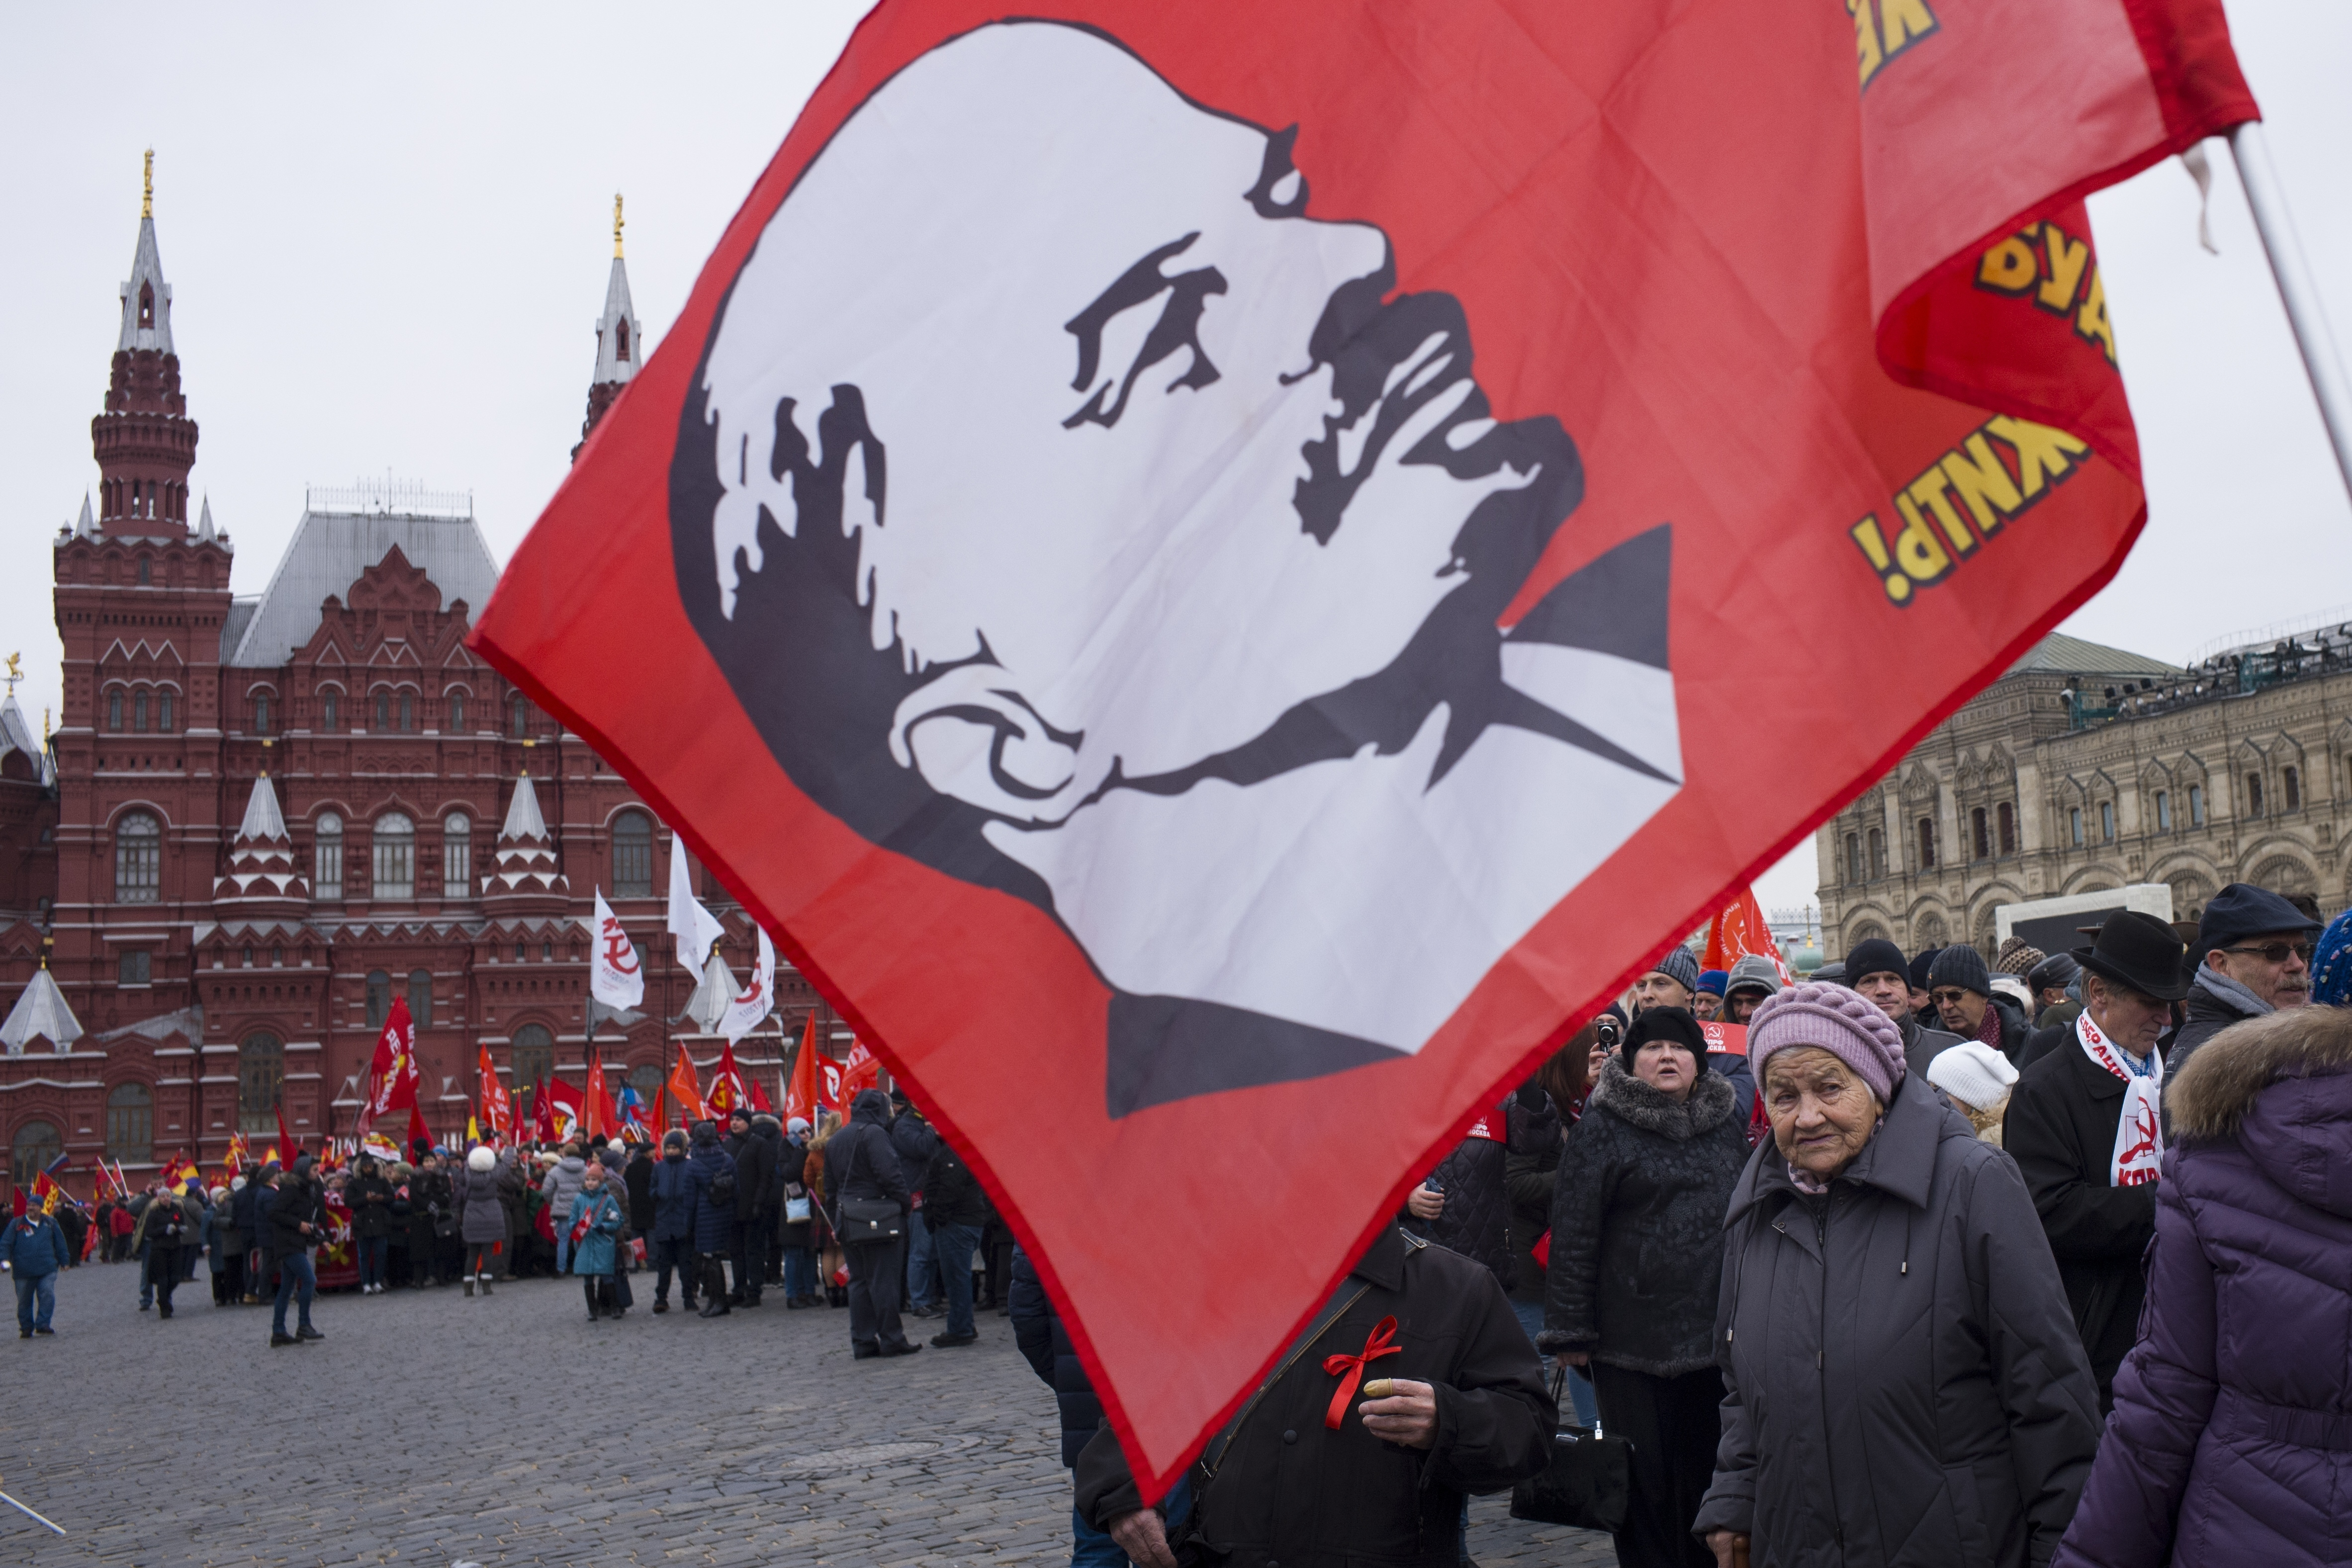 100 years later, Bolshevism is back  And we should be worried  - The